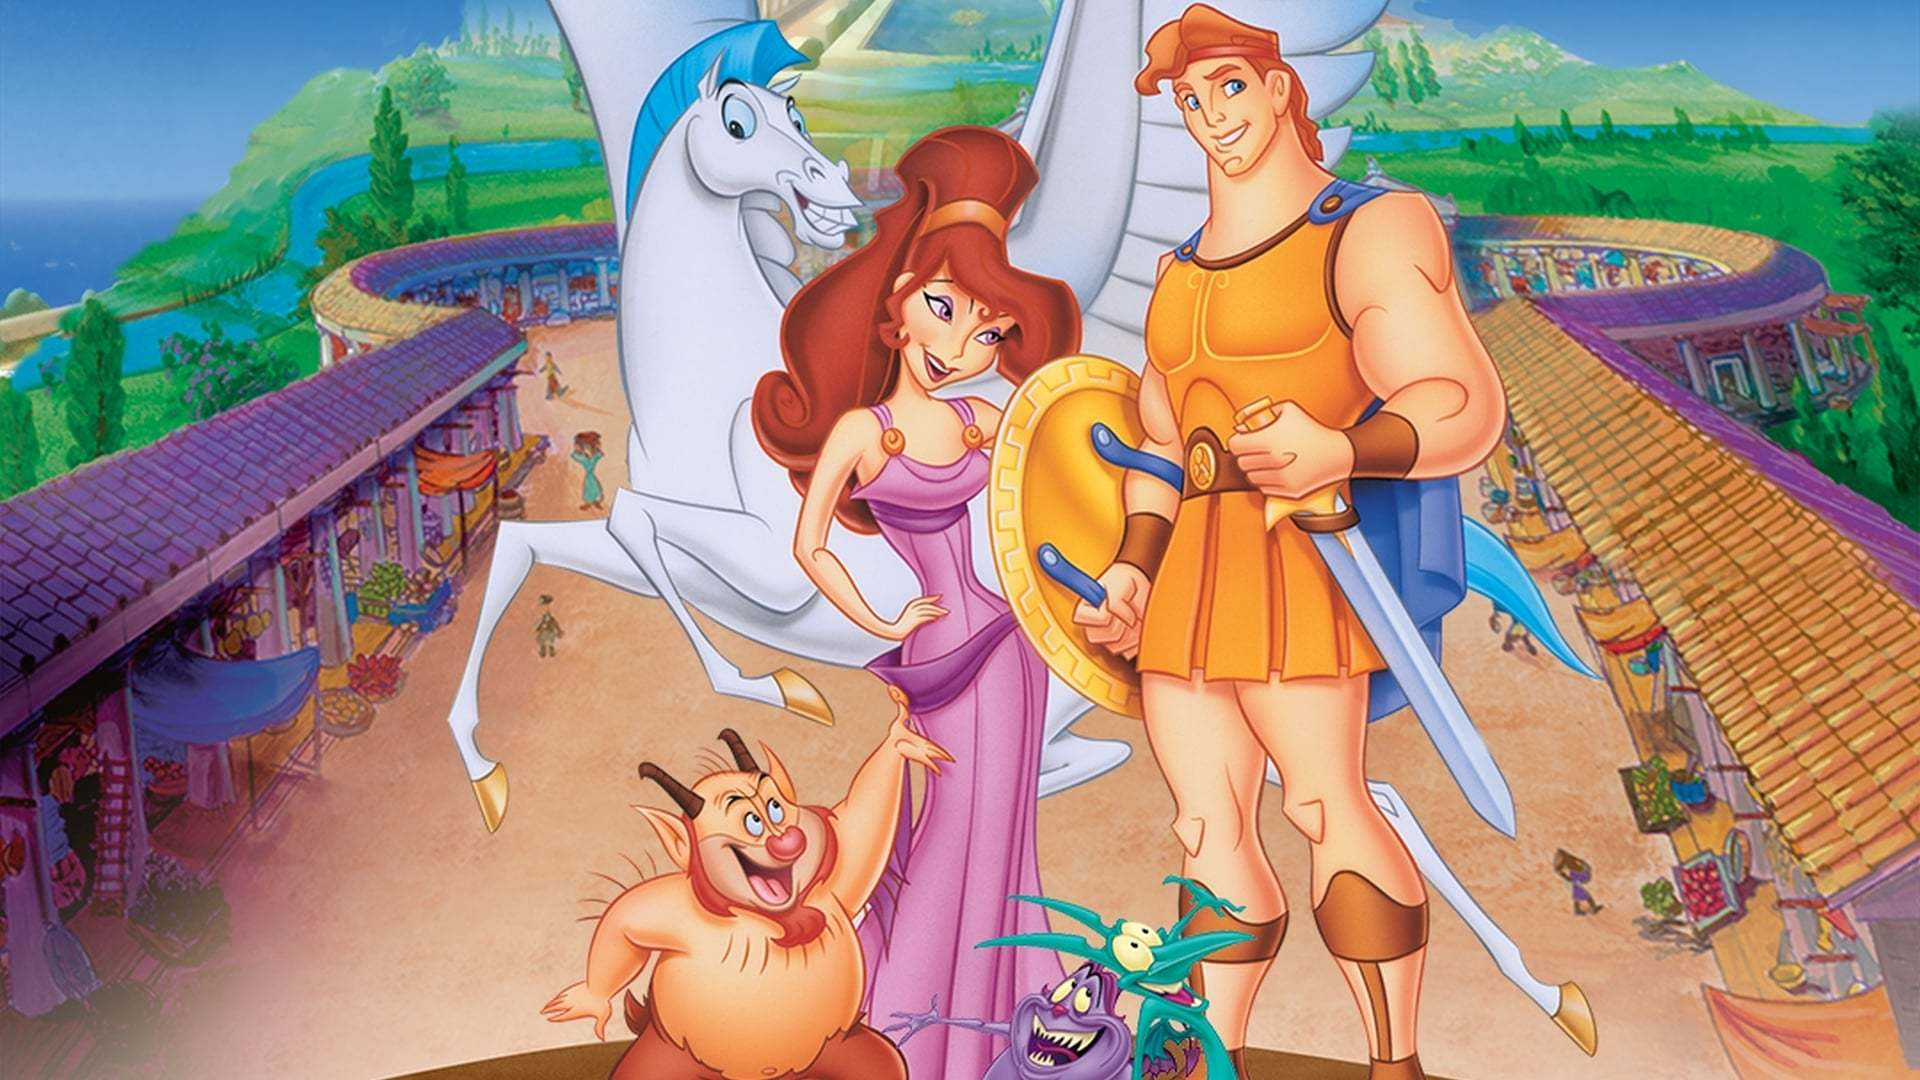 Hercules live-action movie in the works at Disney